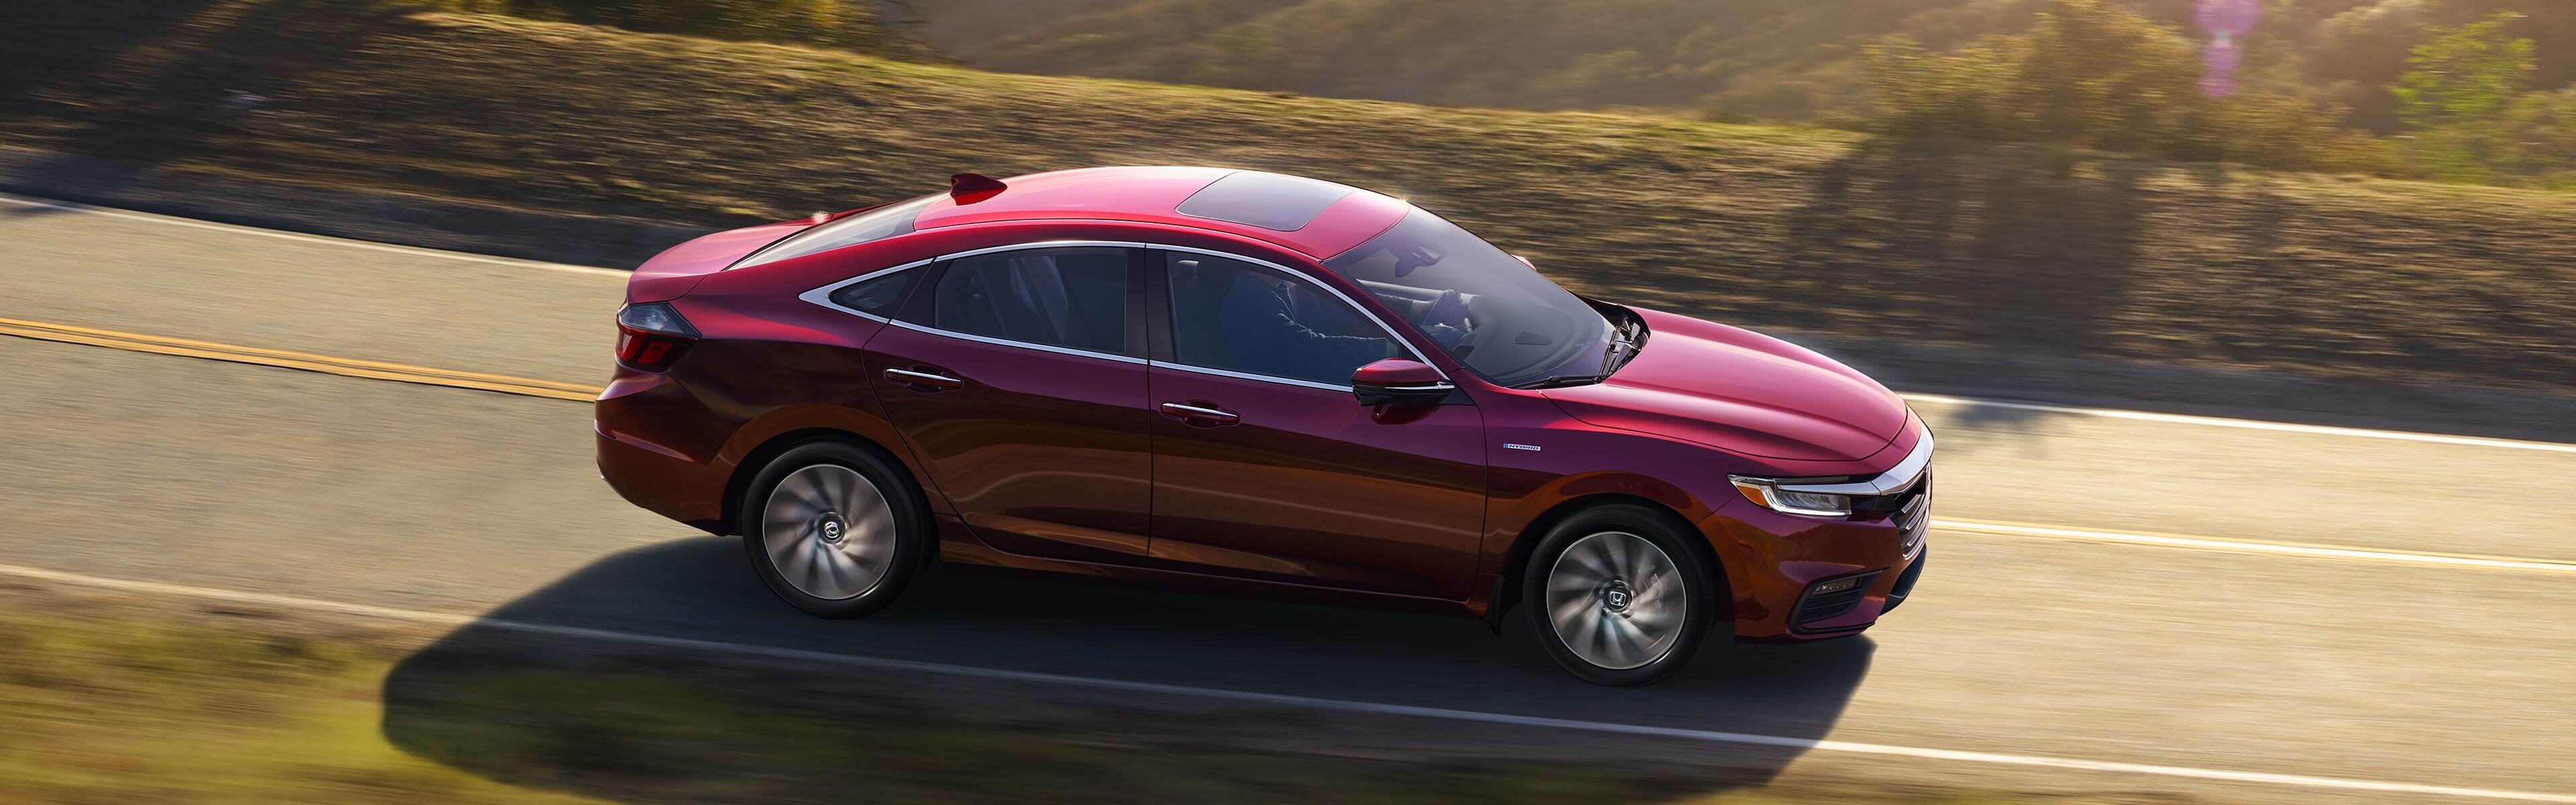 The 2019 Insight | Honda Canada